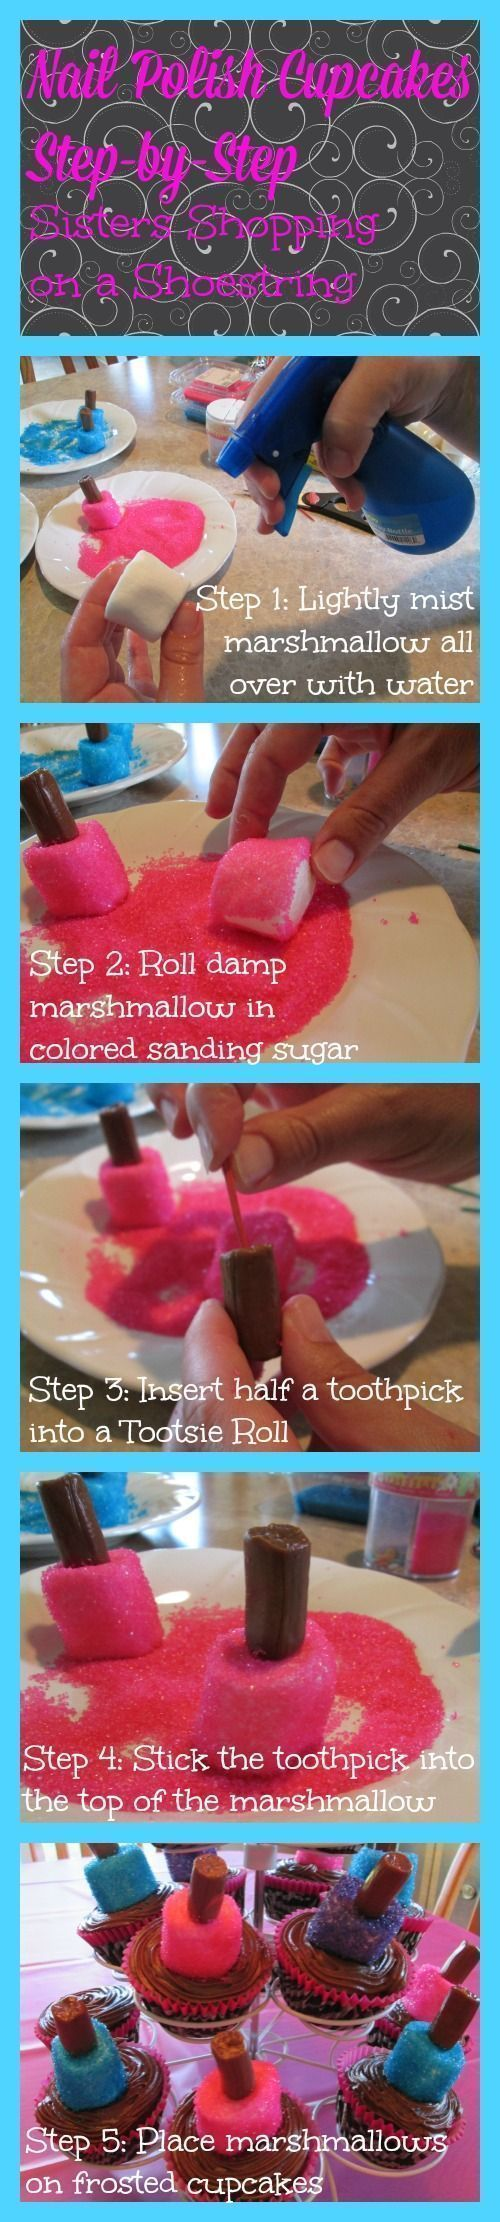 Step-by-Step Spa Sleepover Birthday Party: Marshmallow Nail Polish Cupcakes - Sisters Shopping on a Shoestring